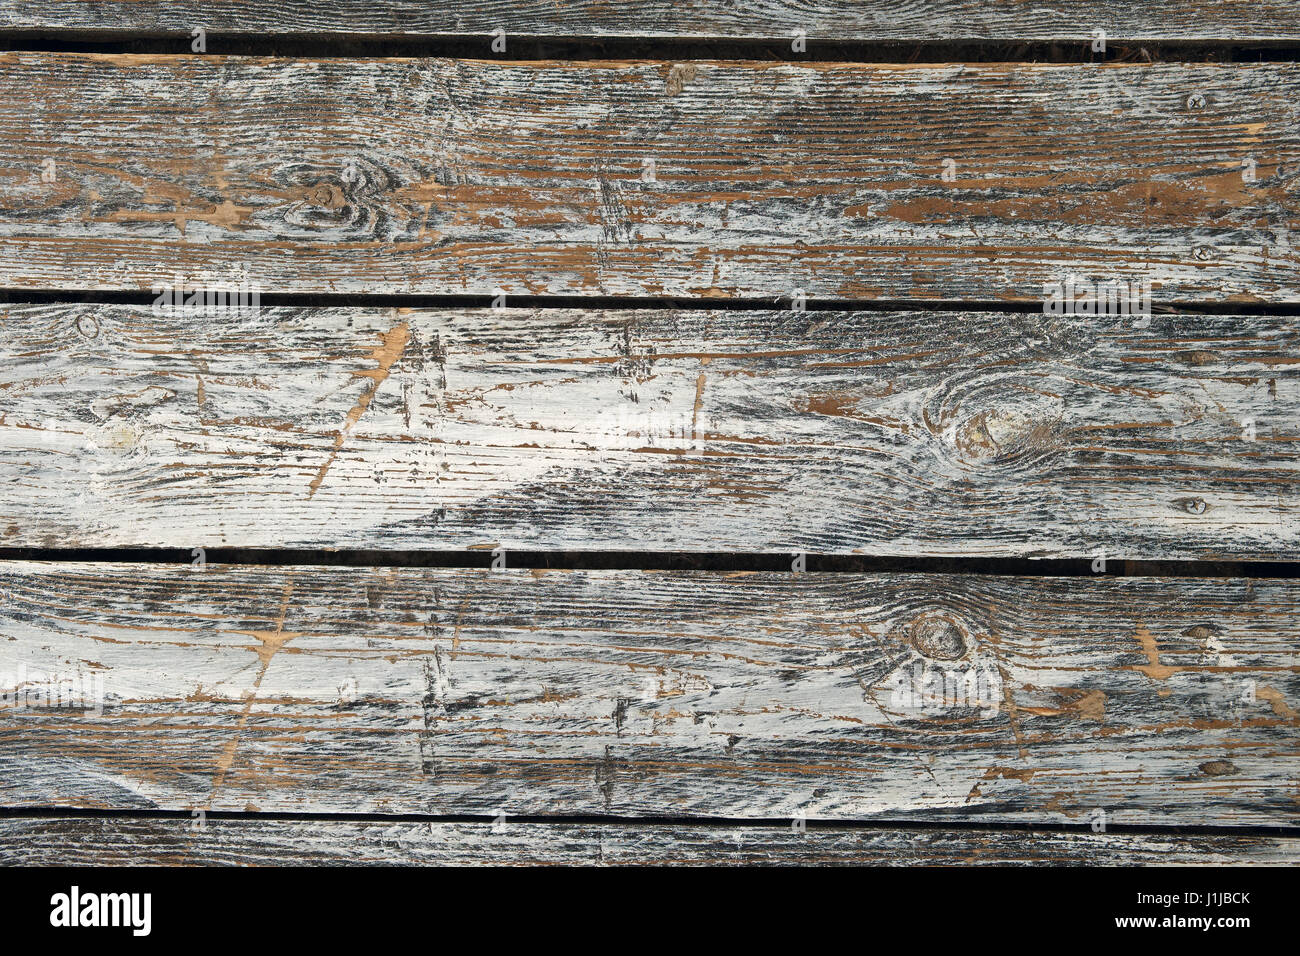 Horizontal old cracked wooden plates with horizontal gaps, planks and chinks Stock Photo